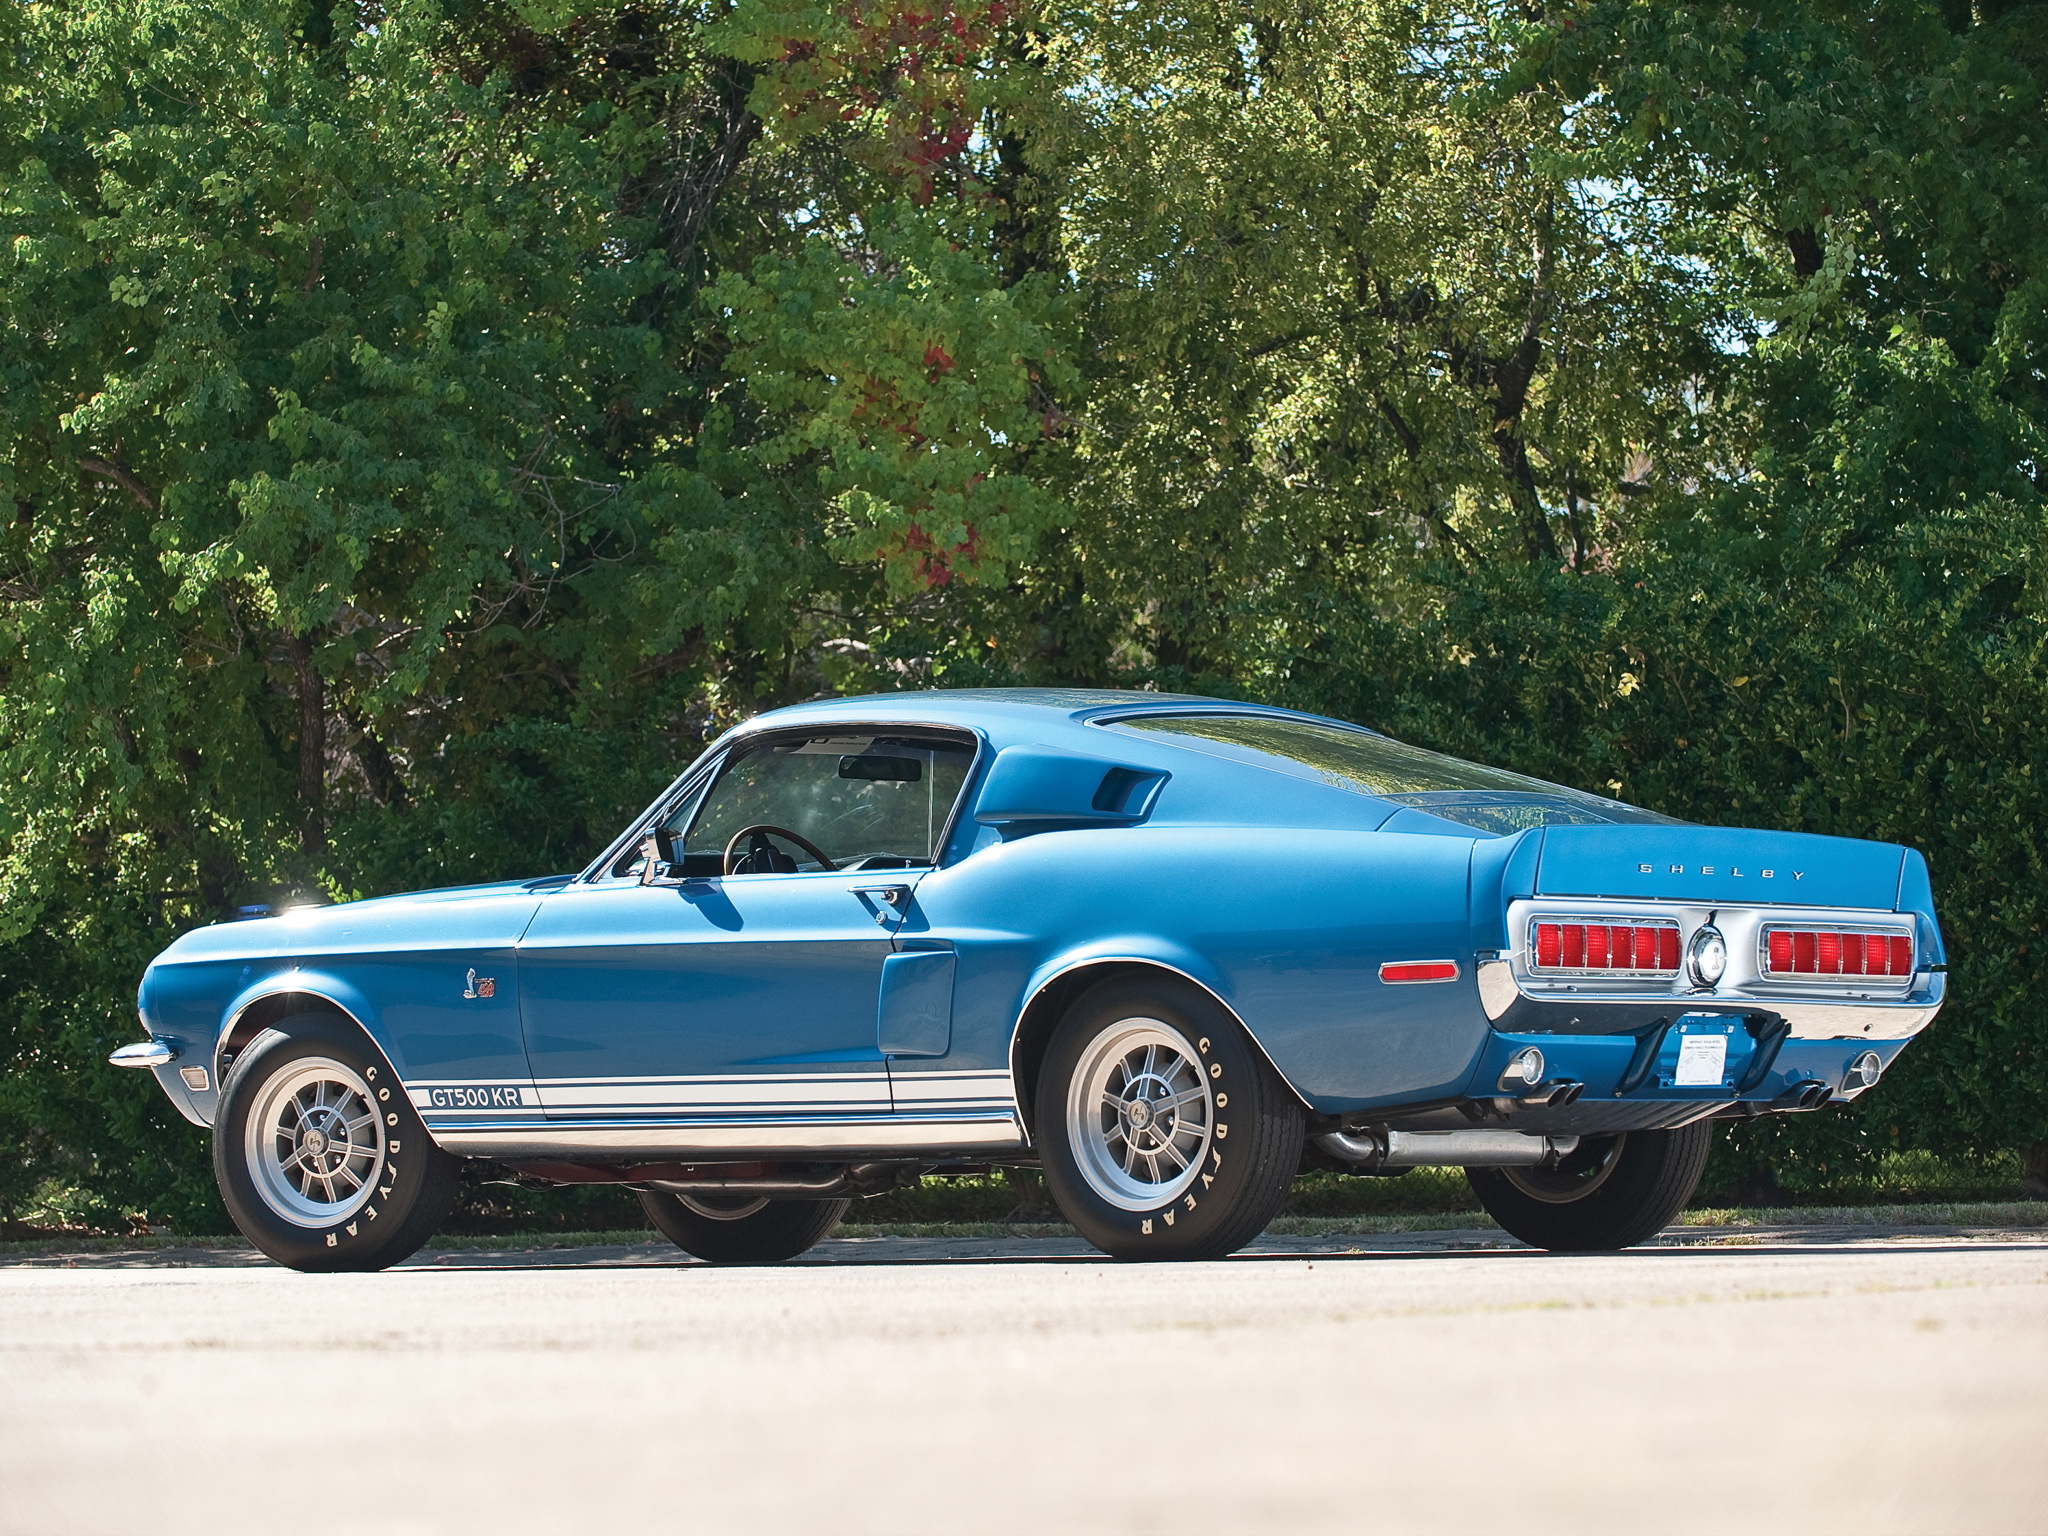 1968 Shelby GT500KR gt500 ford mustang muscle classic d wallpaper